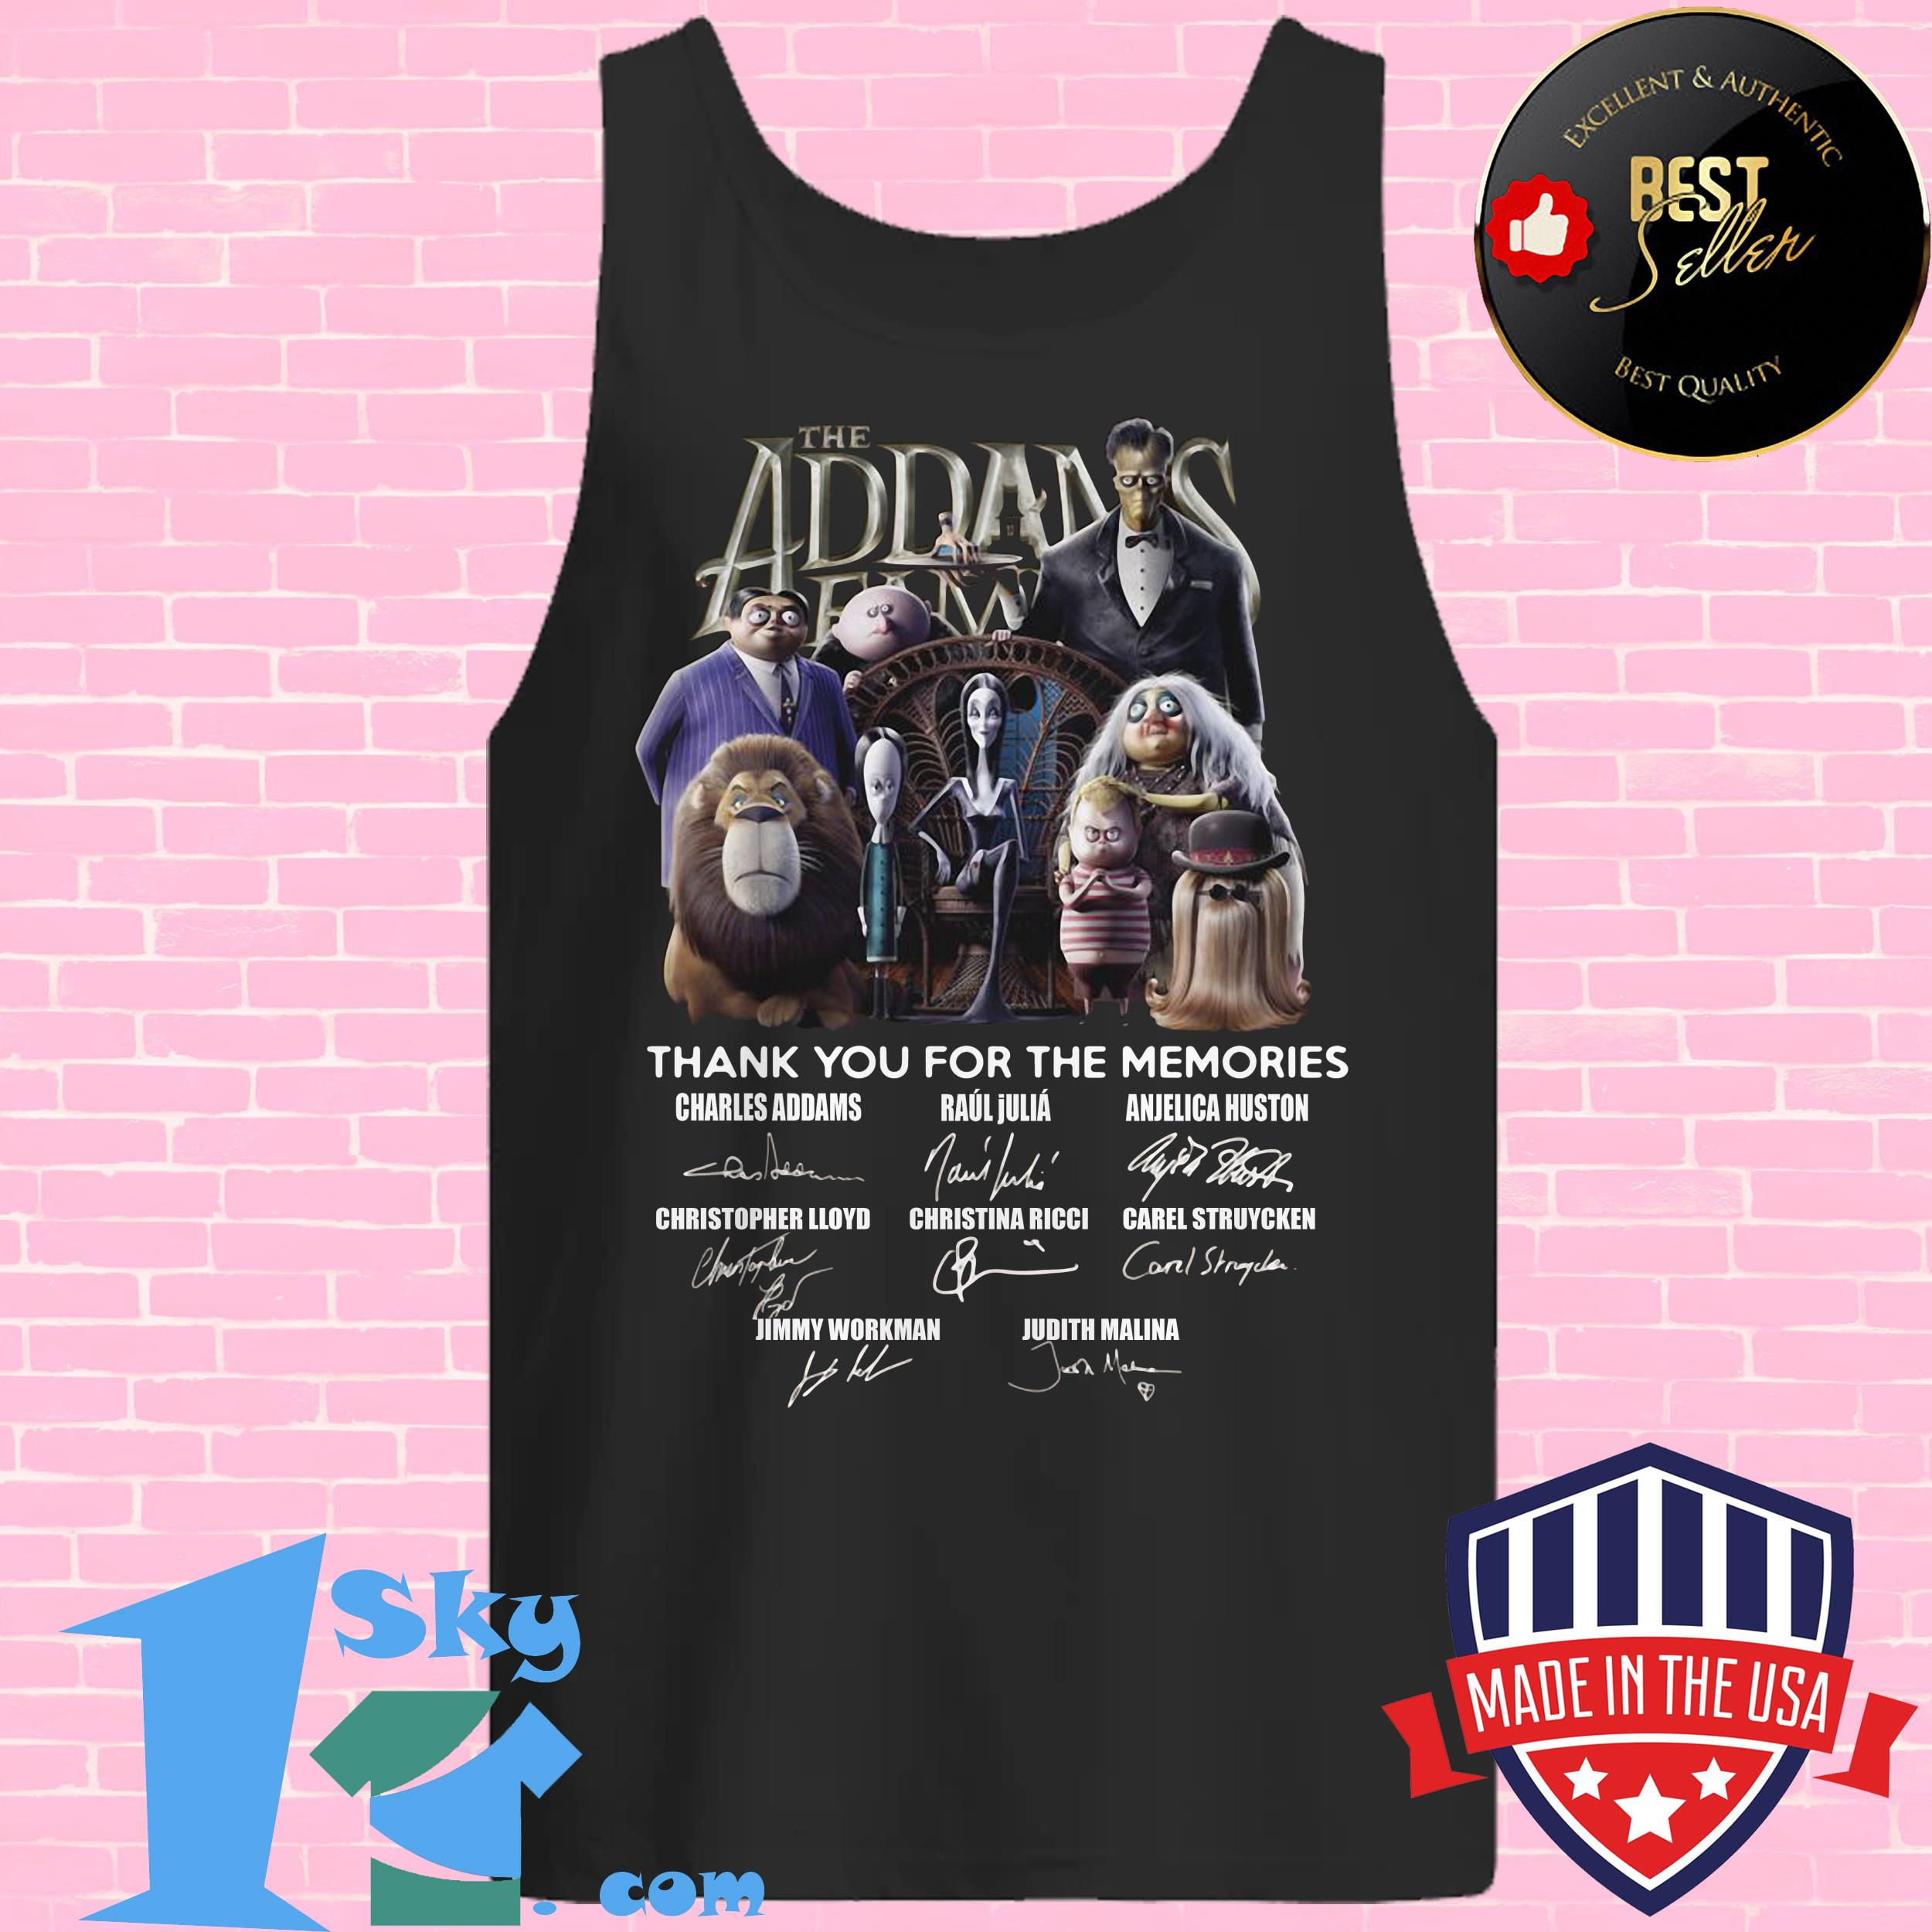 the addams family thank you for the memories signature tank top - The Addams Family Thank You For The Memories Signature Shirt